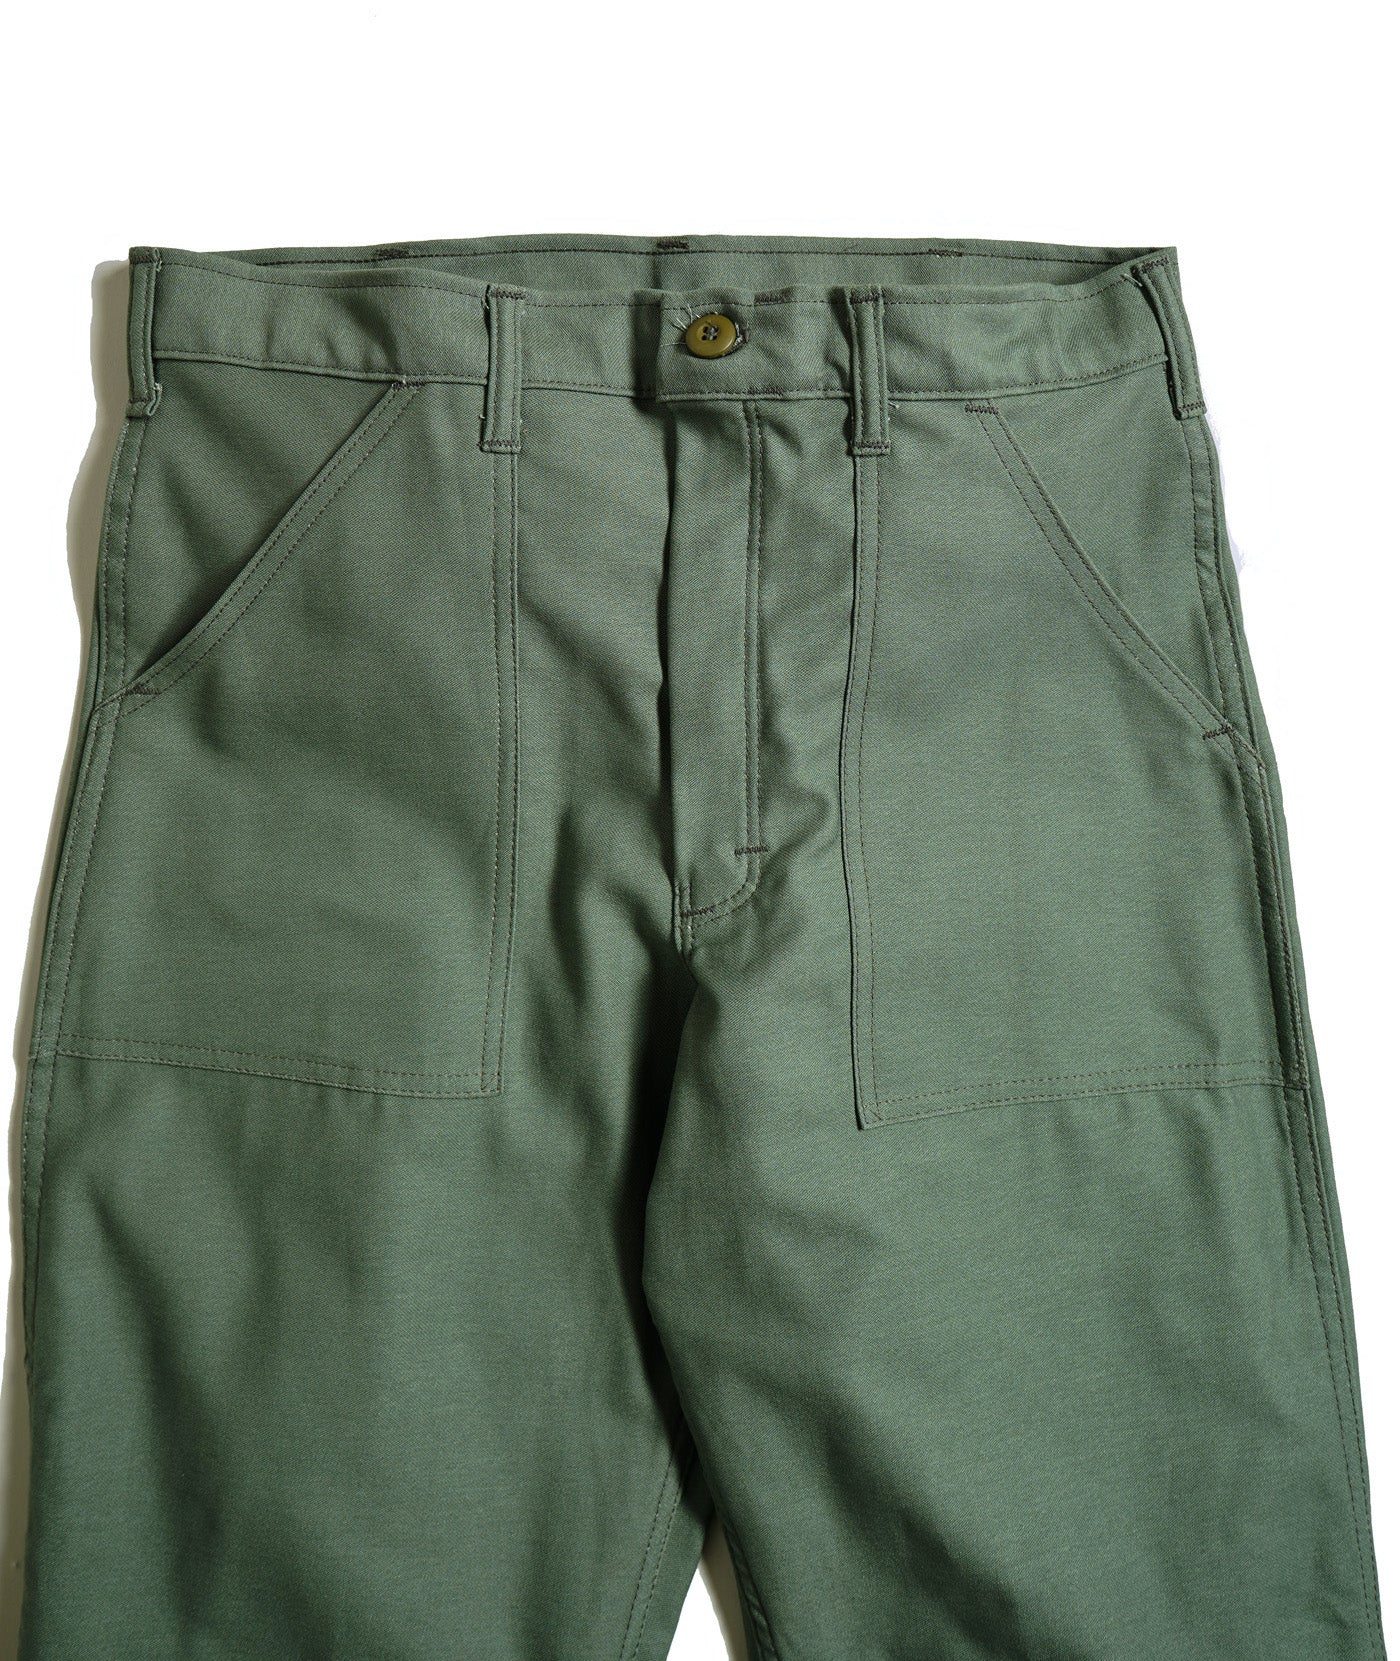 Stan Ray Fatigue pant front pocket detail